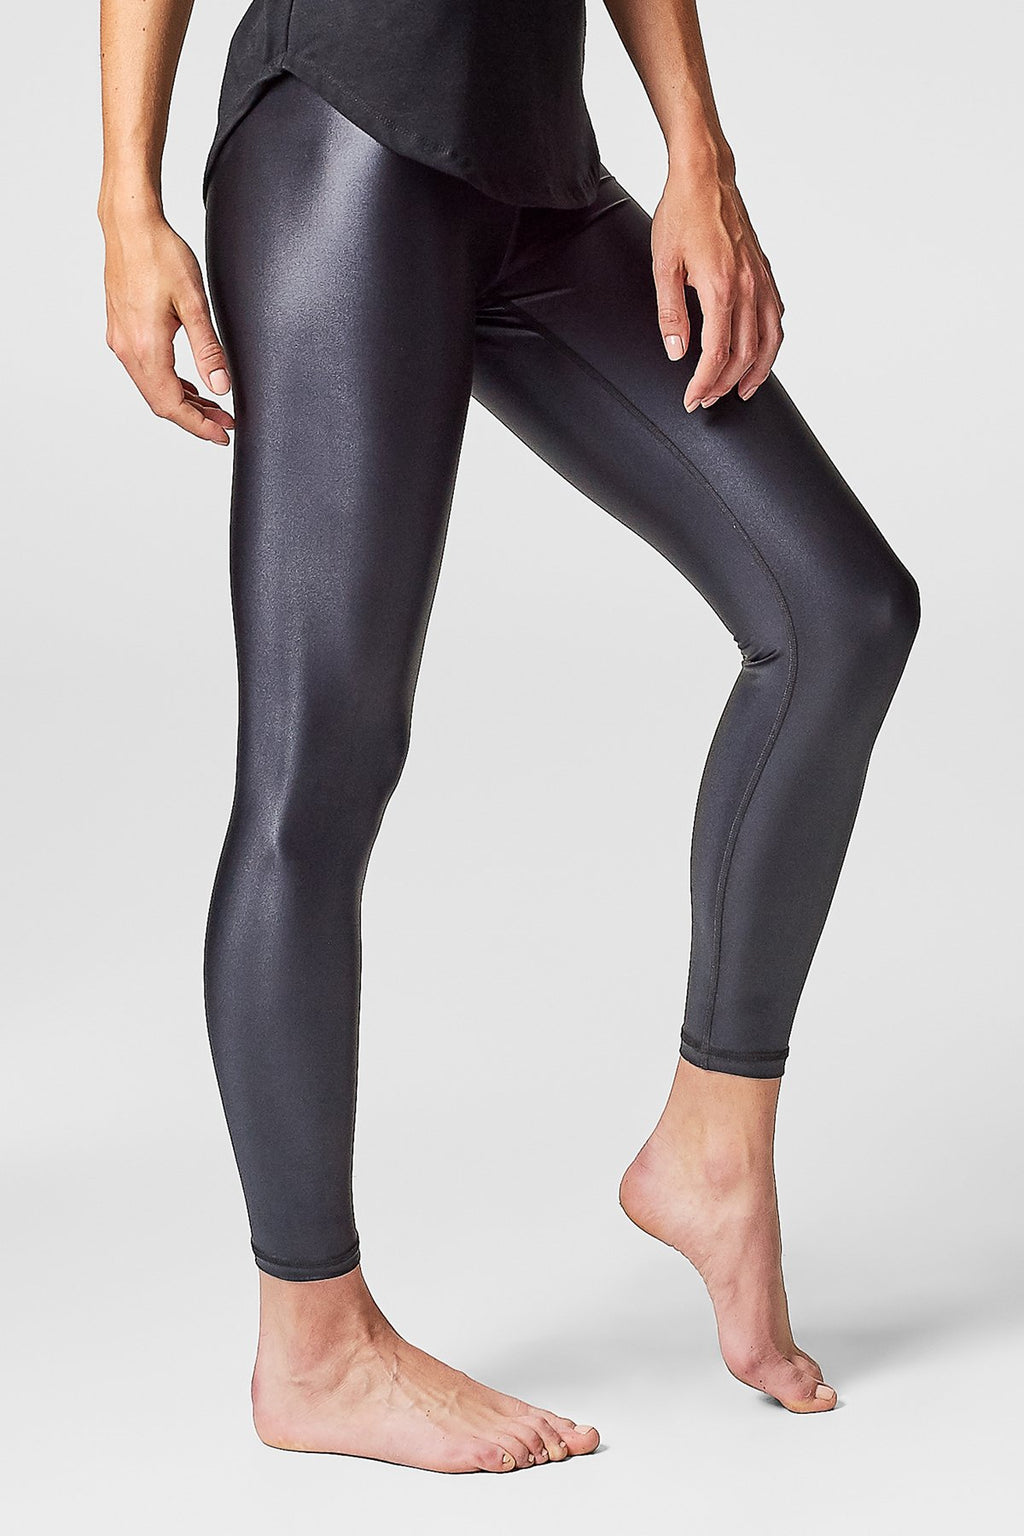 Radiance Legging - Black